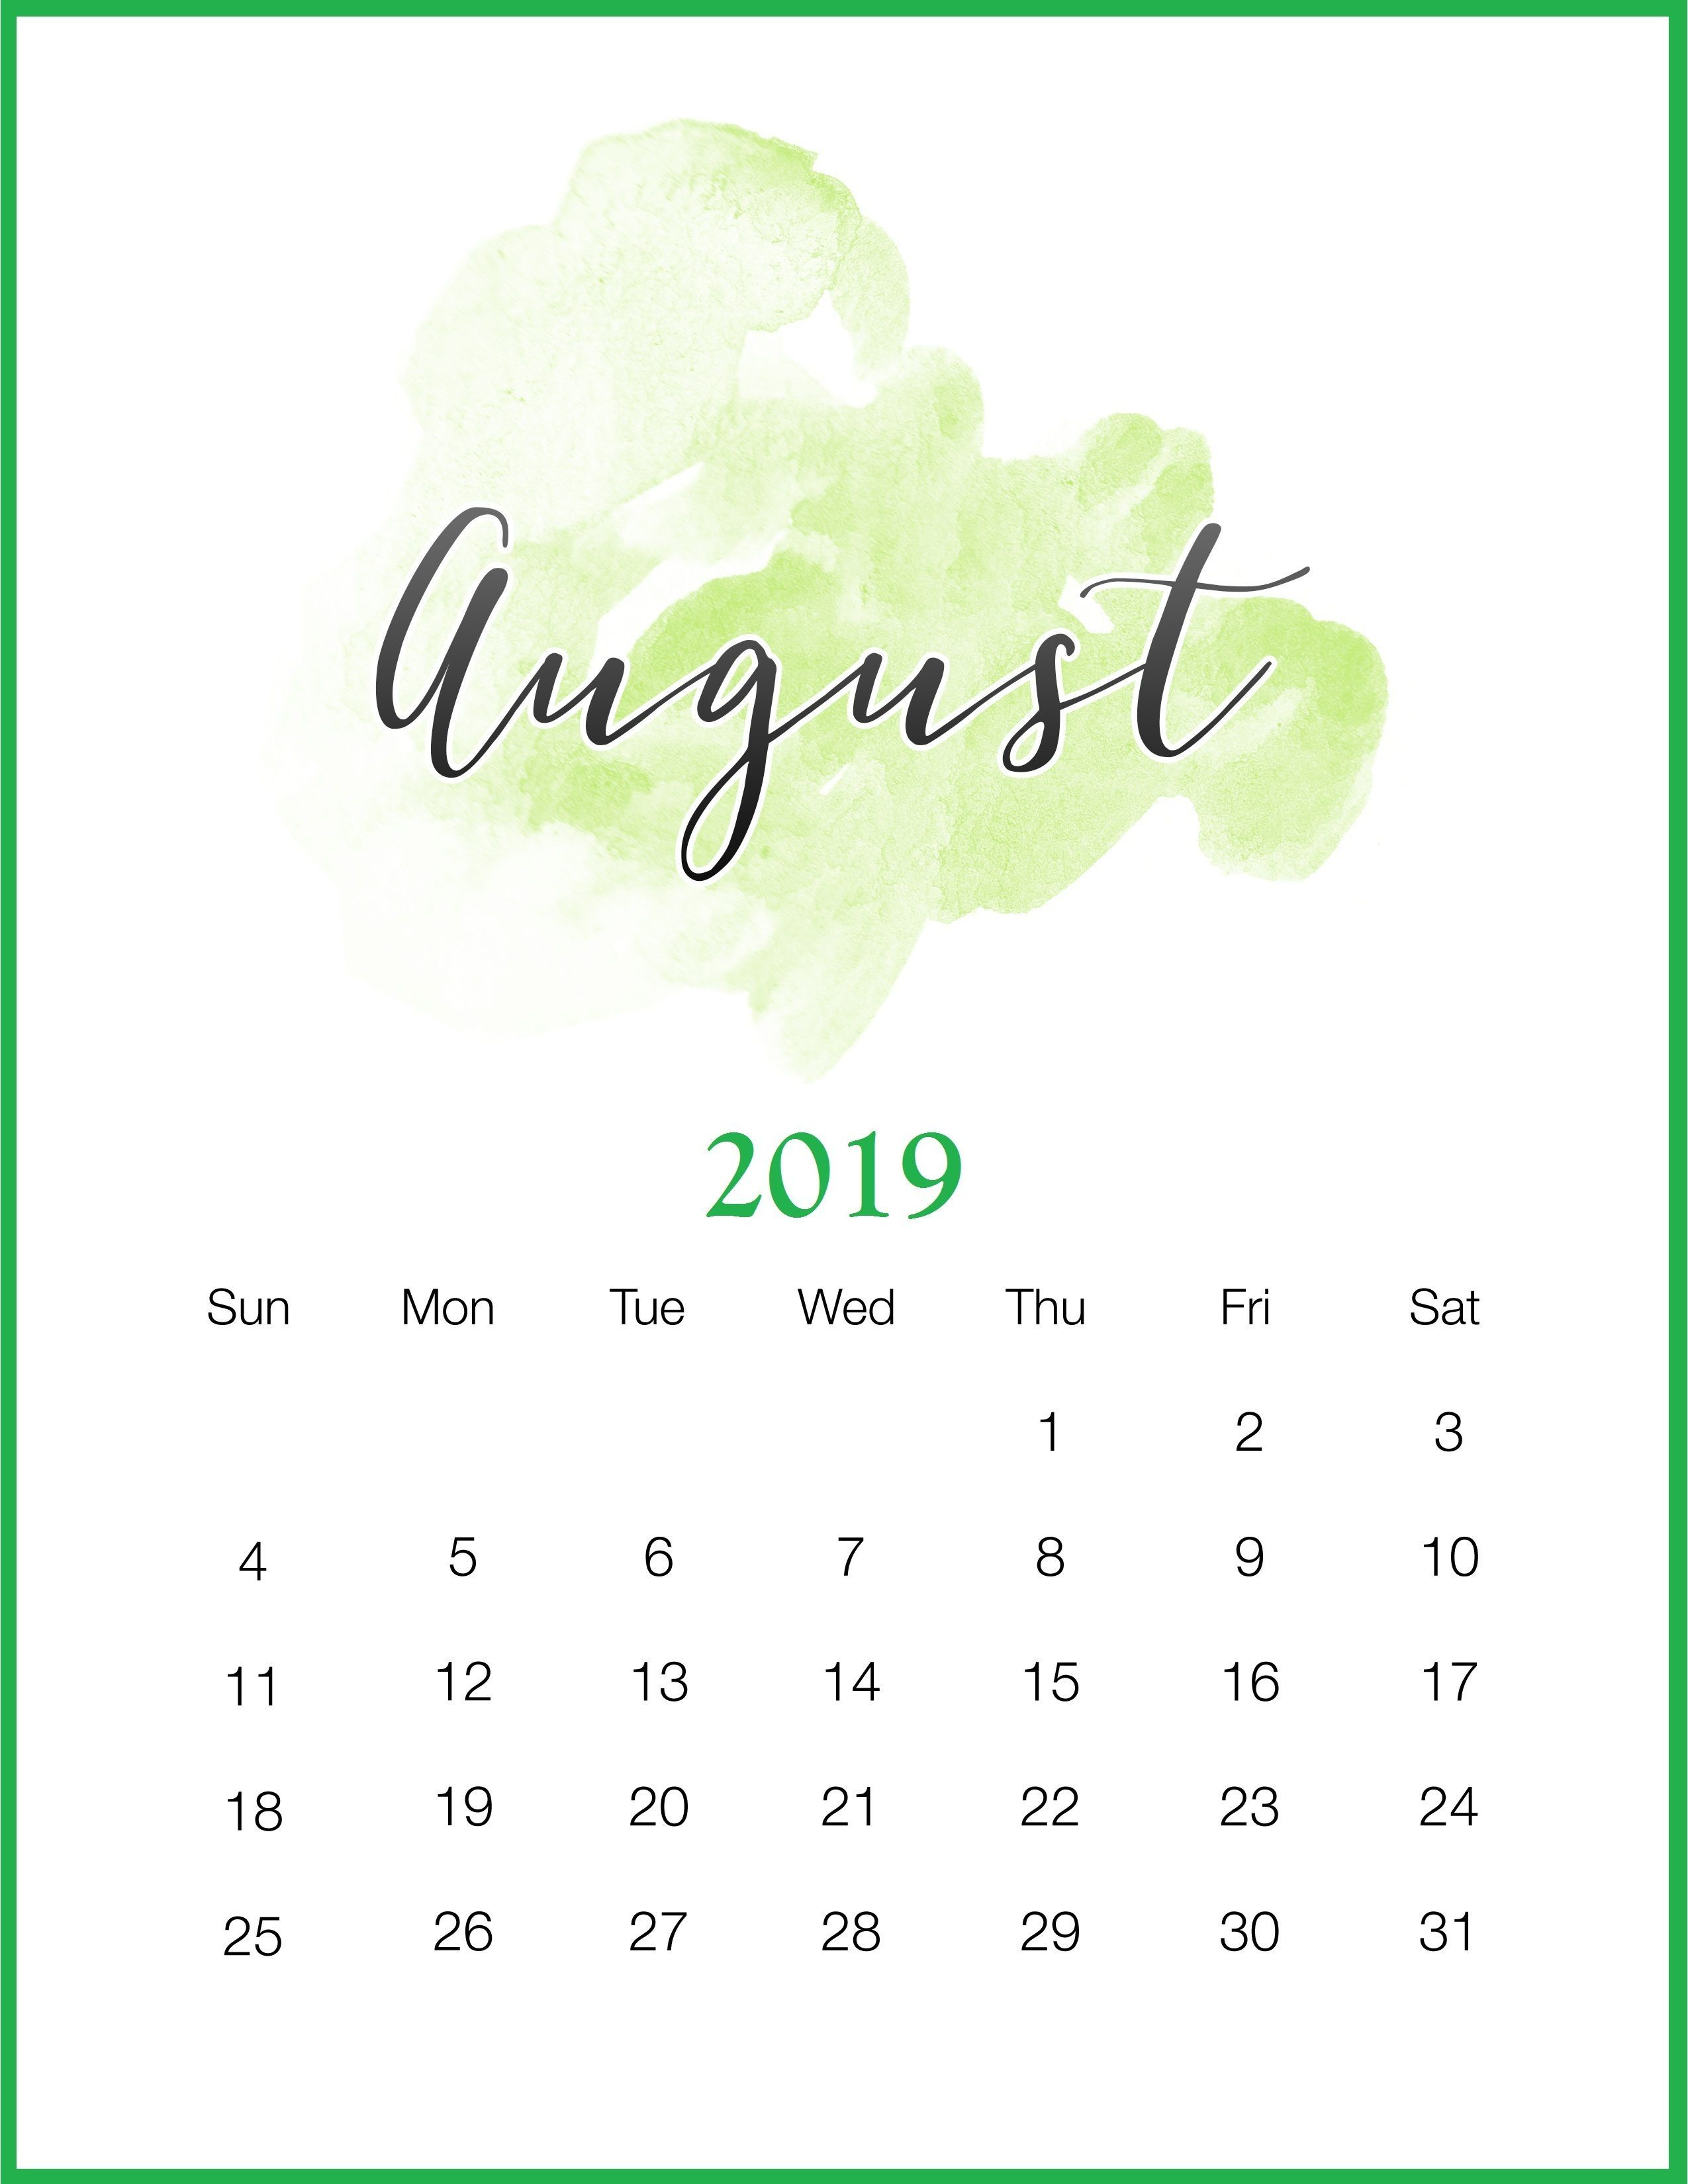 August 2019 Calendar Kalender August Kalender Tumblr Hintergrunde